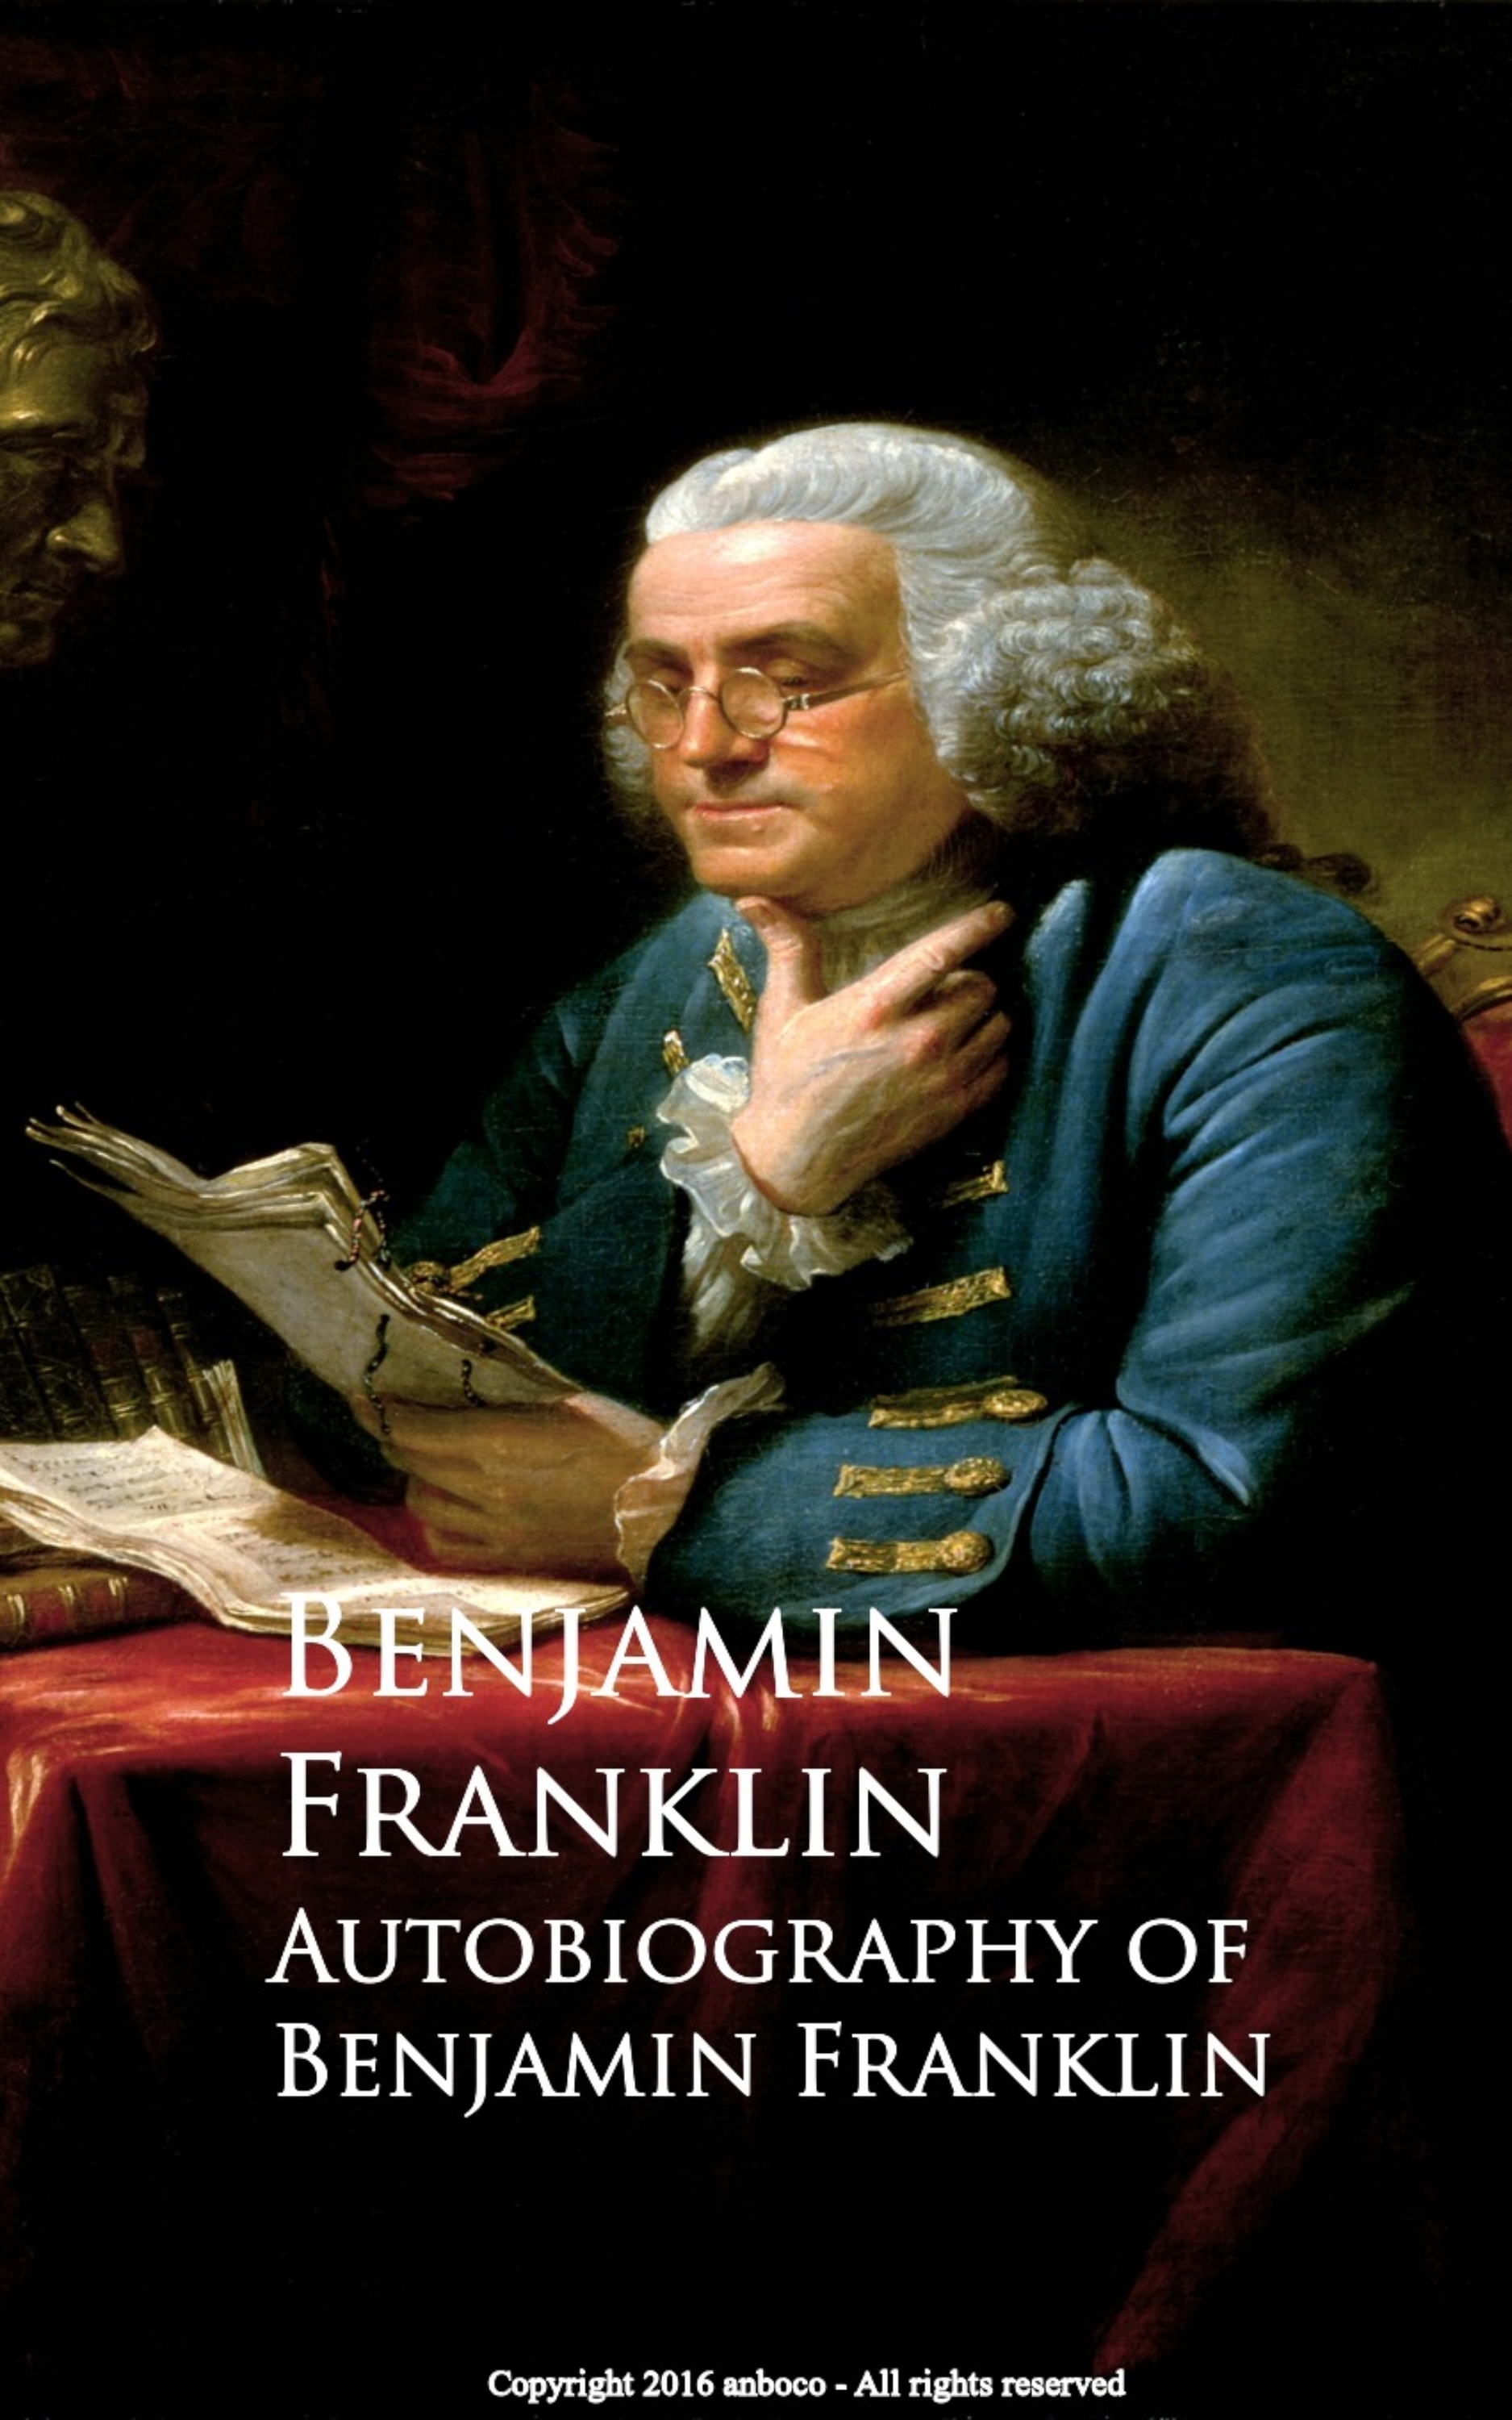 Benjamin Franklin Autobiography of Benjamin Franklin